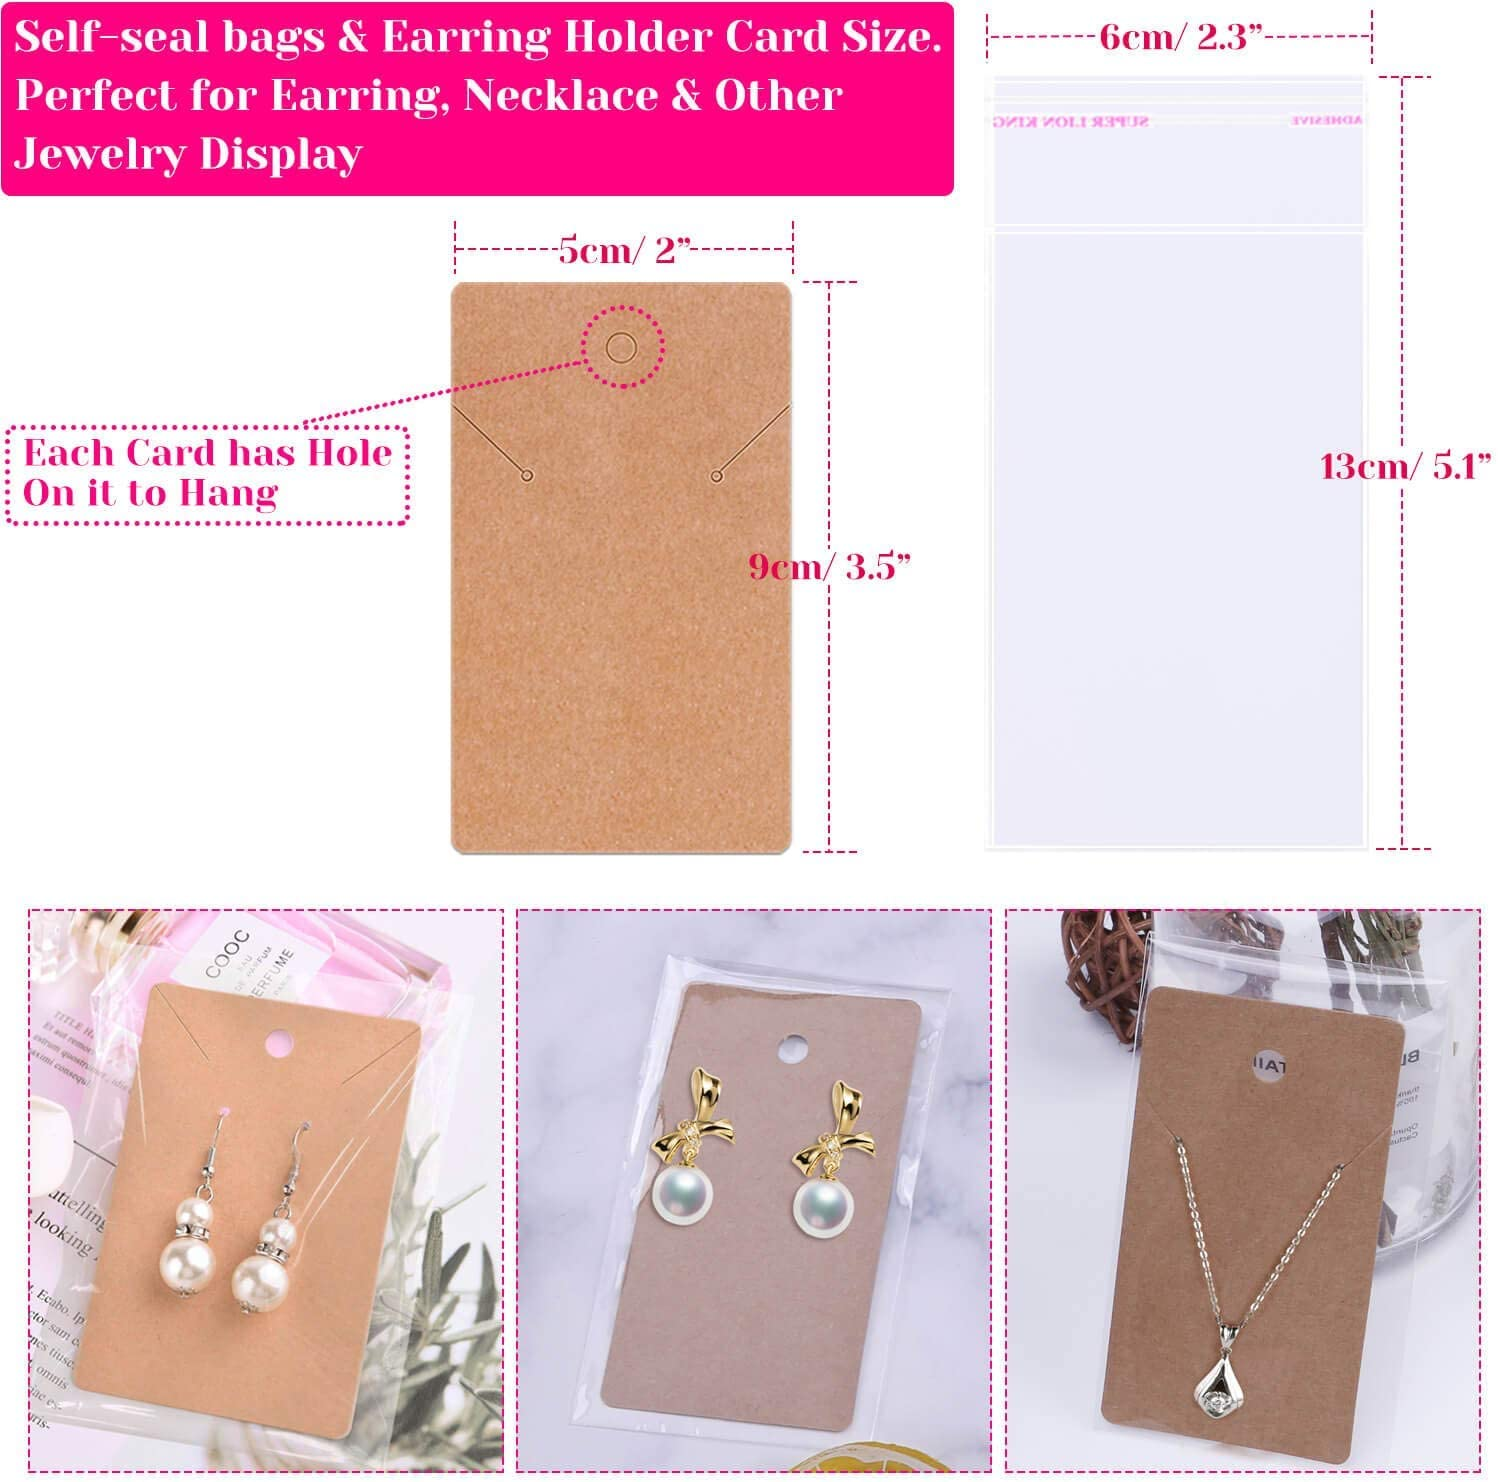 Jump Rings Earrings Holder Cards and Clear Bags for DIY Earring Supplies and Earring Findings Pliers Earring Backs Earring Making Supplies,1350pcs Earring Making Kit with Earring Hooks